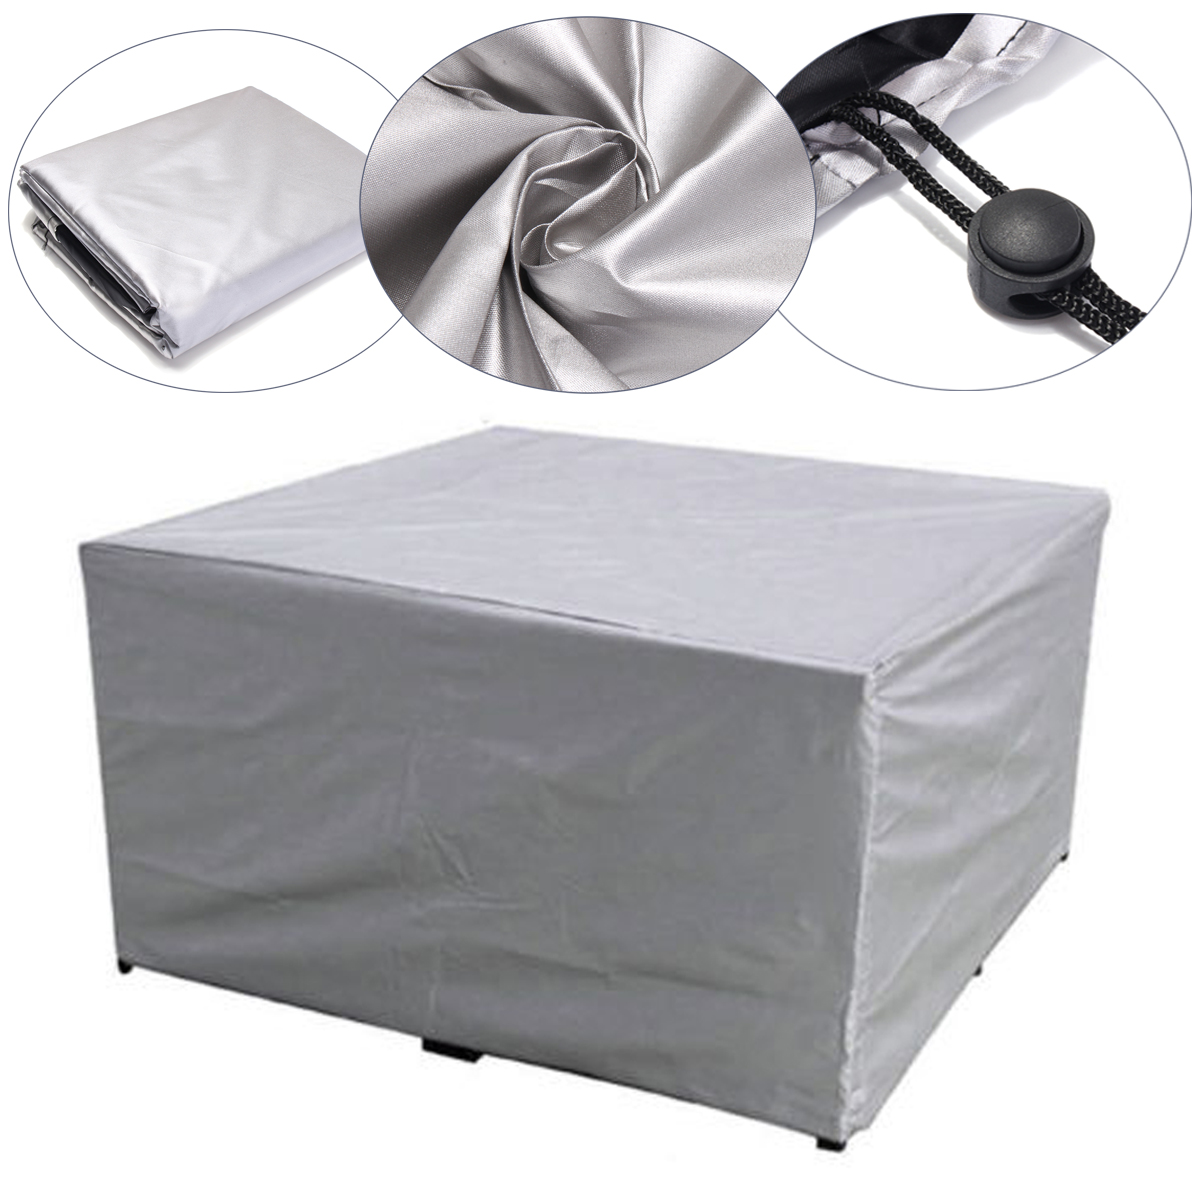 Silver Patio Furniture.Us 10 5 30 Off 1pc Silver Color Waterproof Outdoor Garden Patio Furniture Covers Rain Snow Chair Covers For Sofa Table Chair Dust Proof Cover In